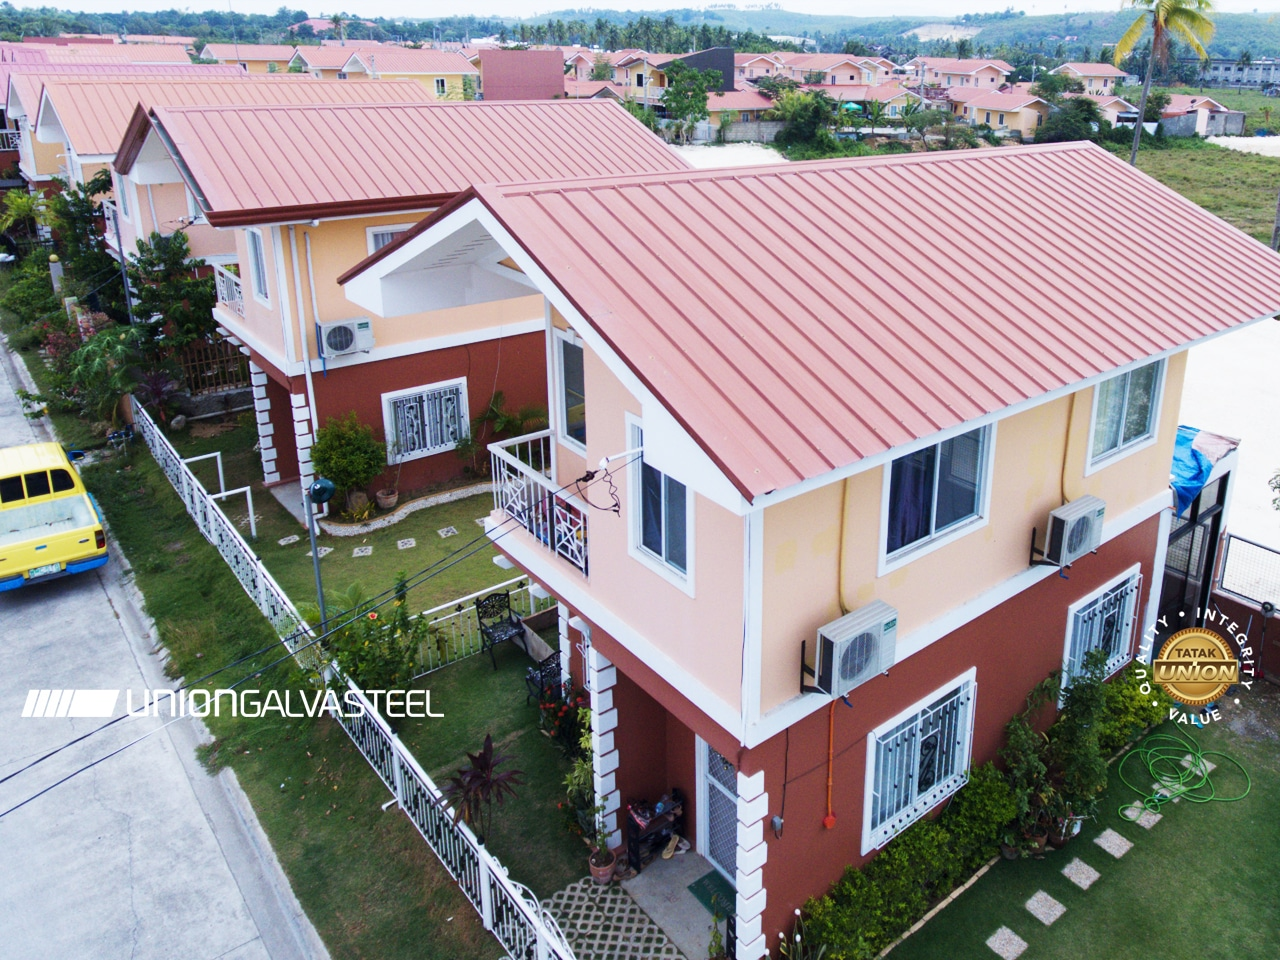 The Best Roofing Materials for Philippine Climate